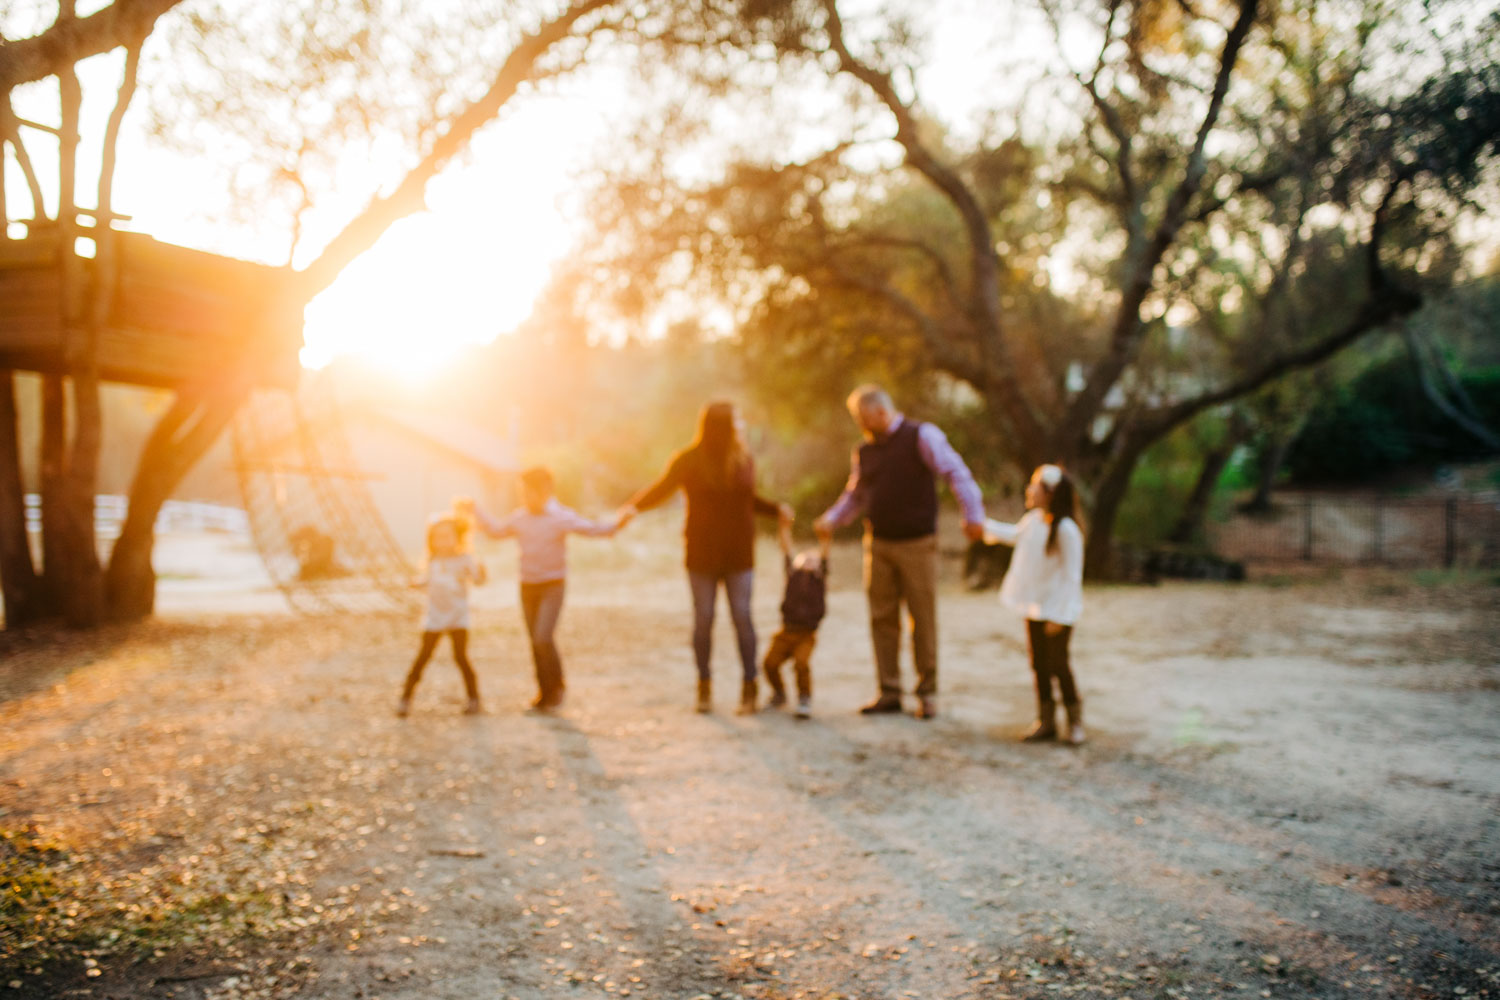 An intentional blurred family photo is created, filled with light and happiness, in Roseville, California with Amy Wright Photography.